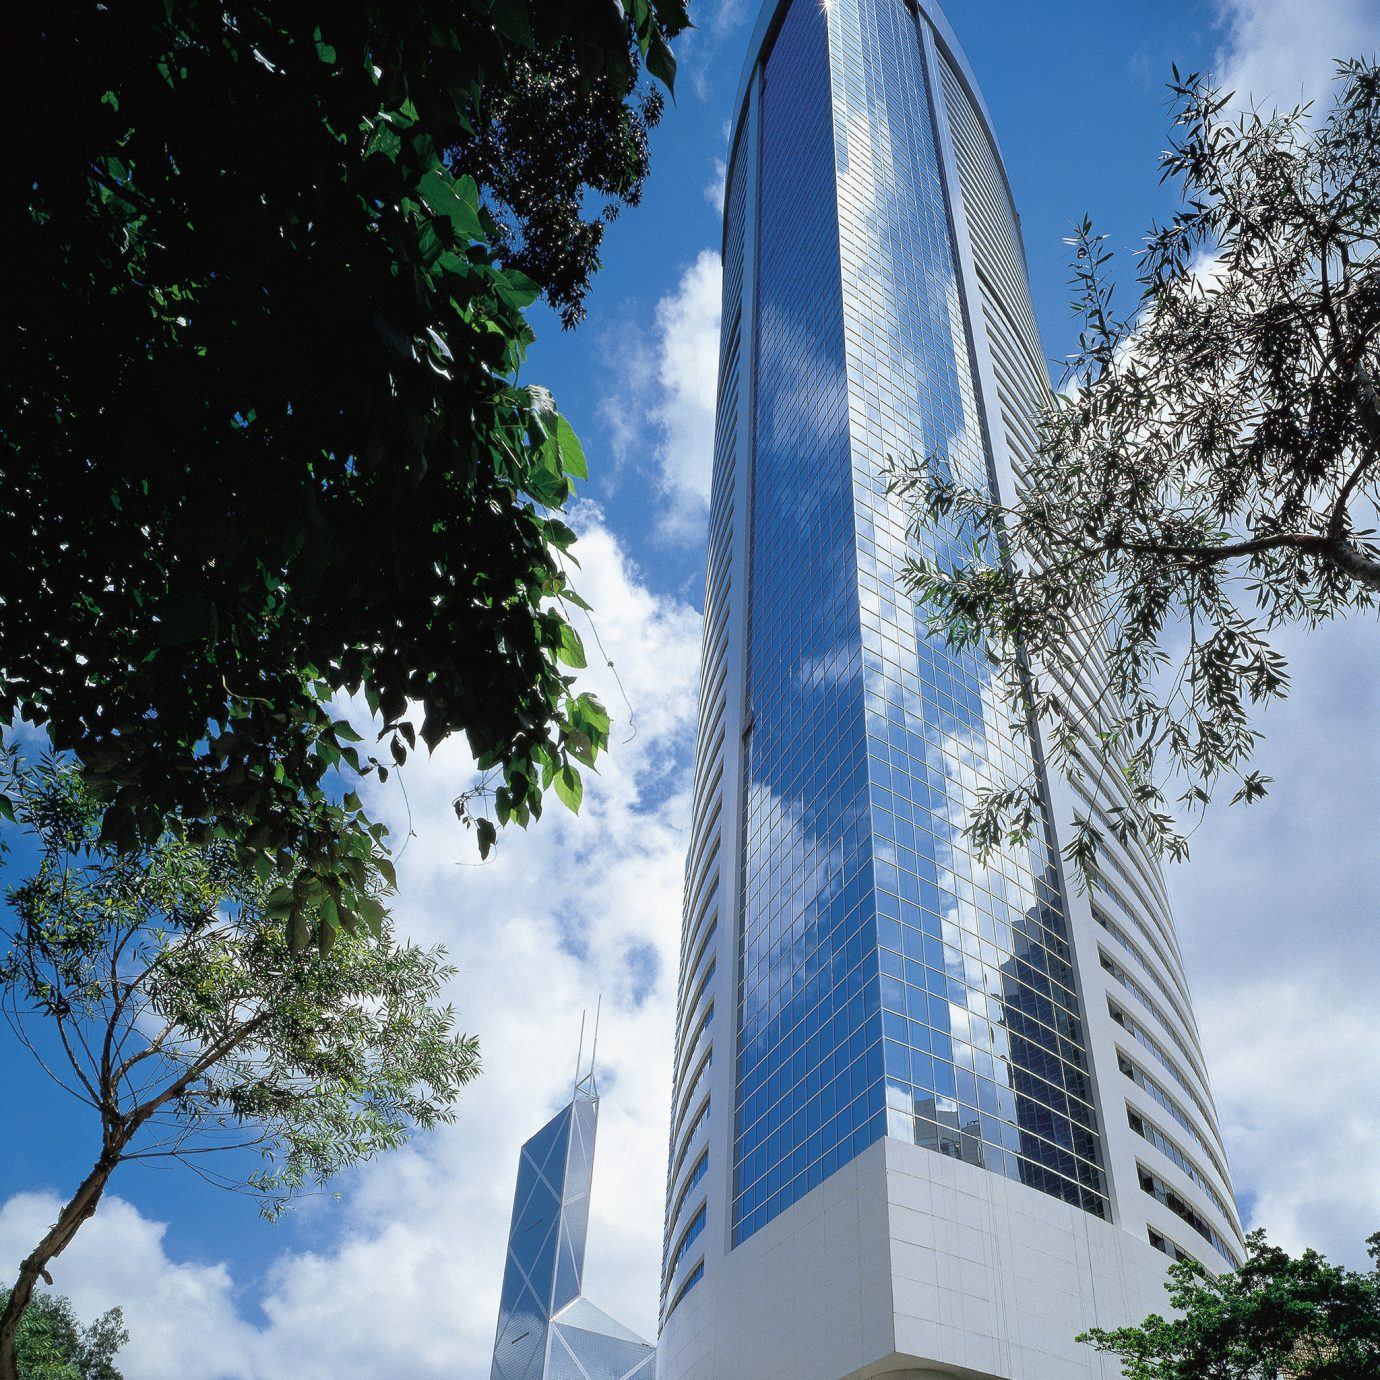 Business City Family Luxury tree sky building landmark skyscraper tower Architecture tower block monument arch spire